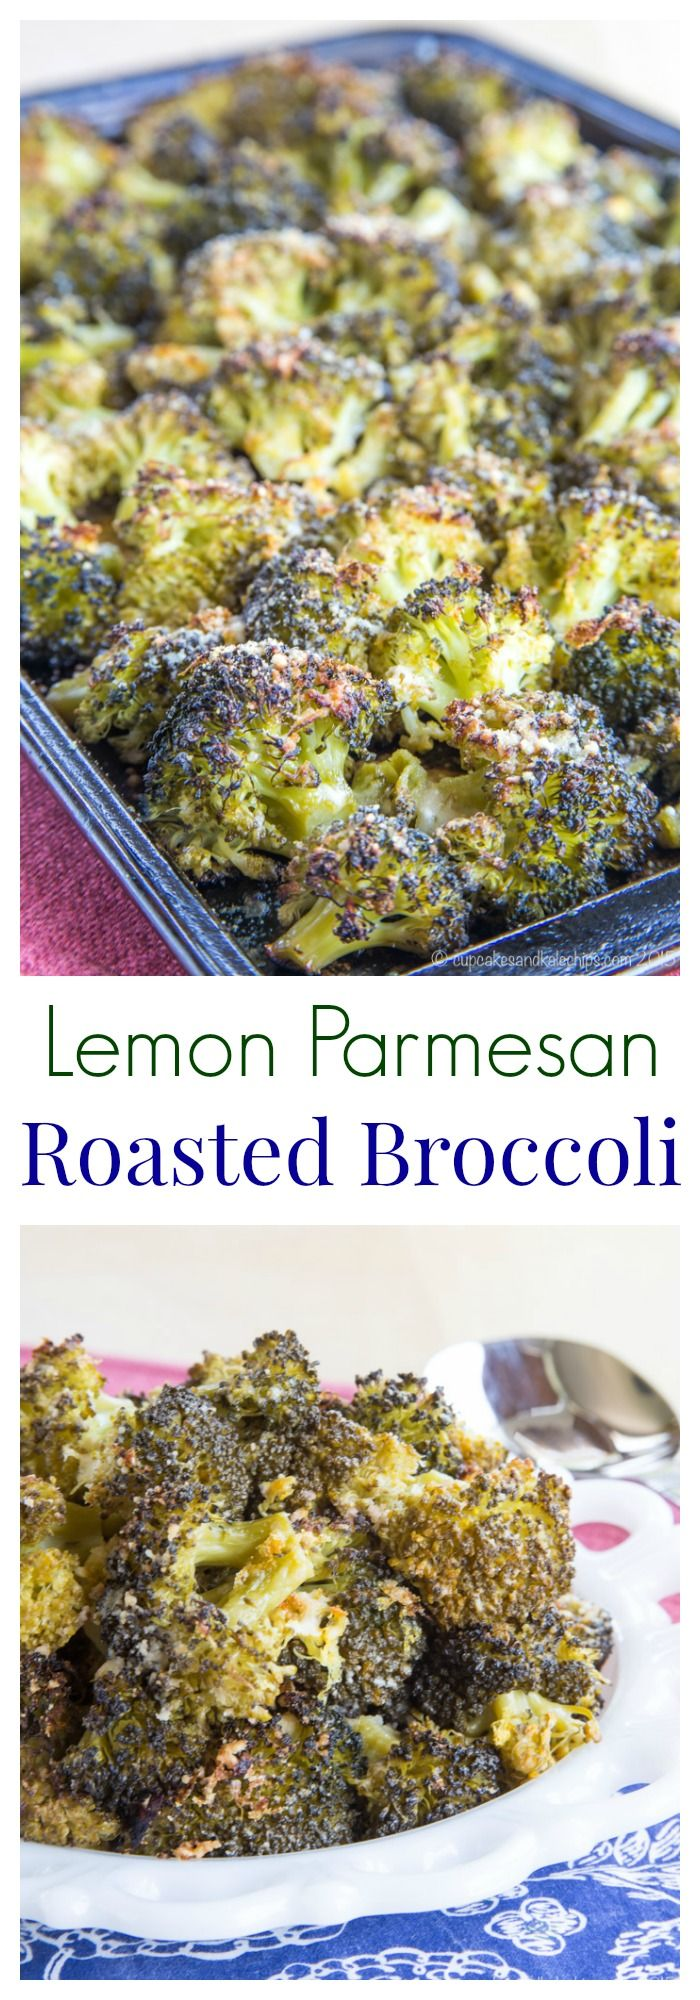 9 best images about Healthy Side Dishes on Pinterest ...